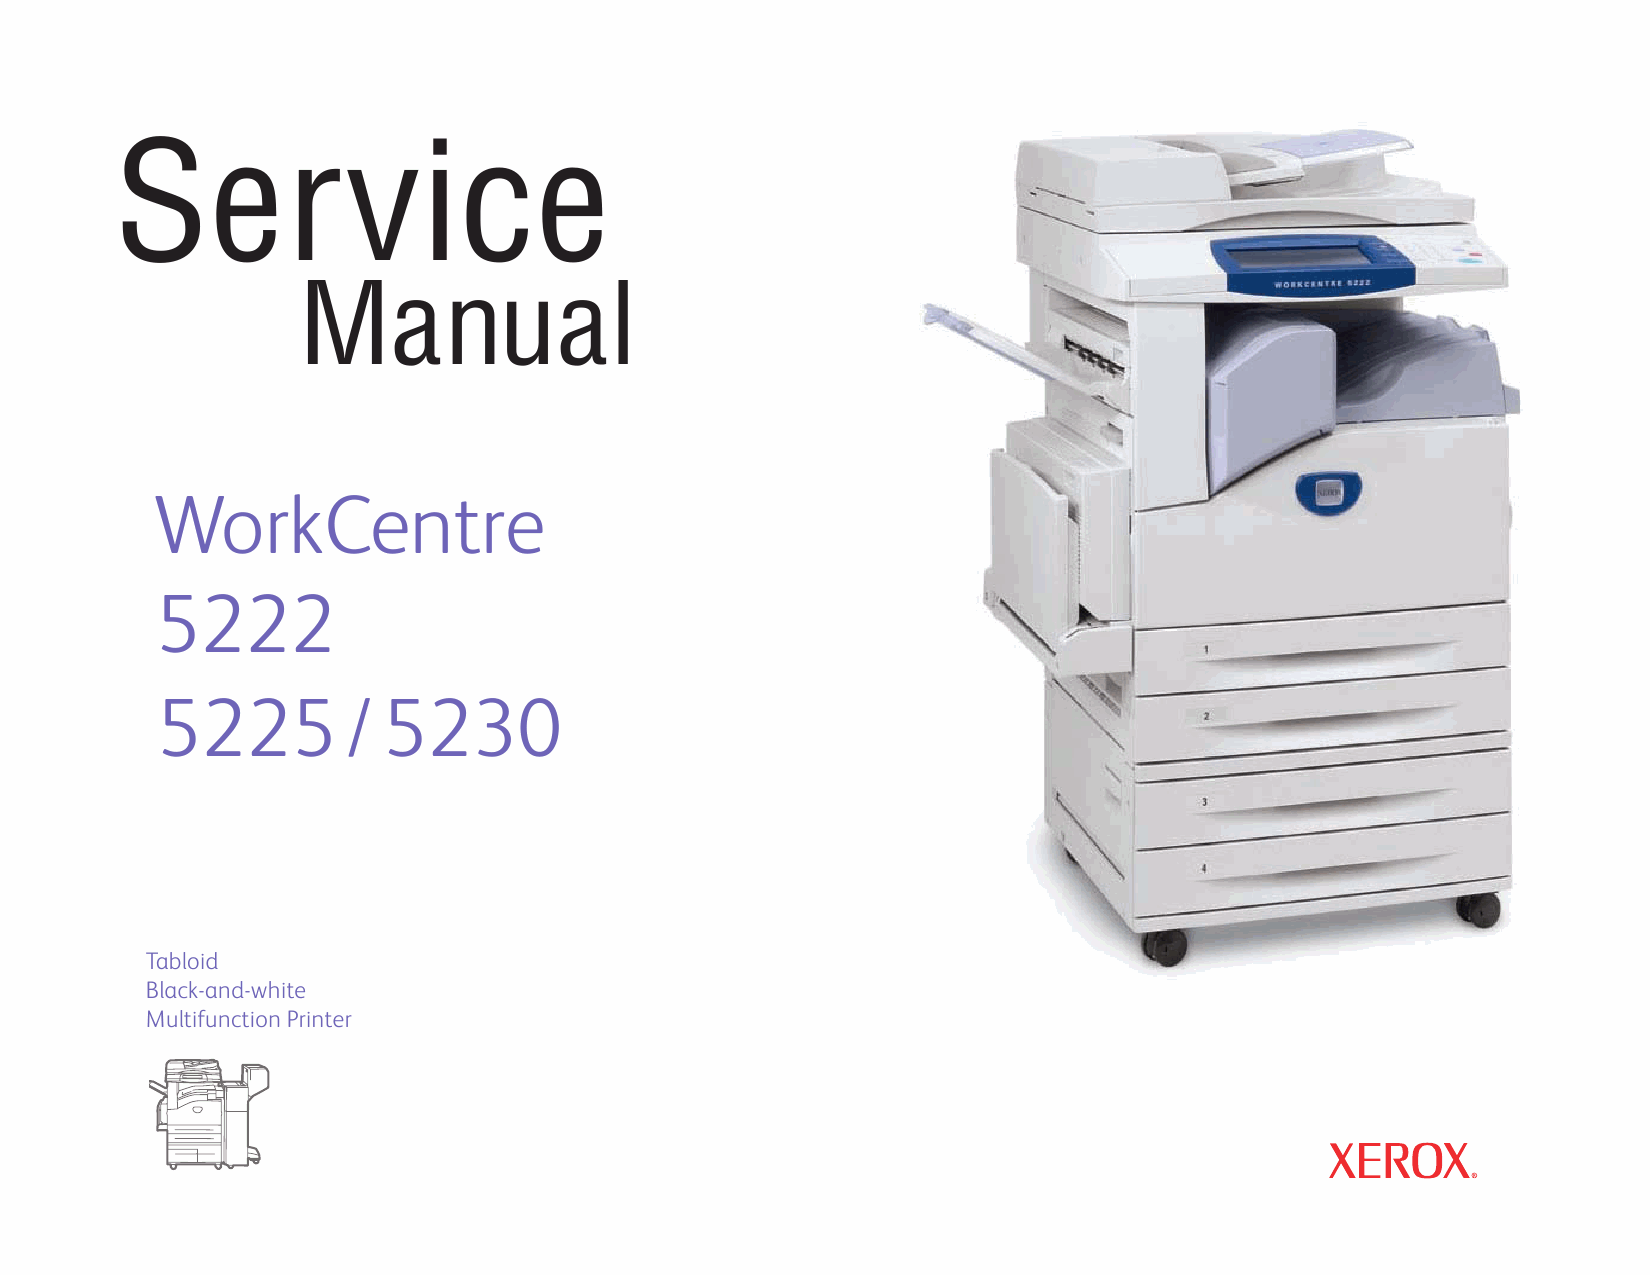 Xerox WorkCentre 5222 5225 5230 Parts List and Service Manual-1